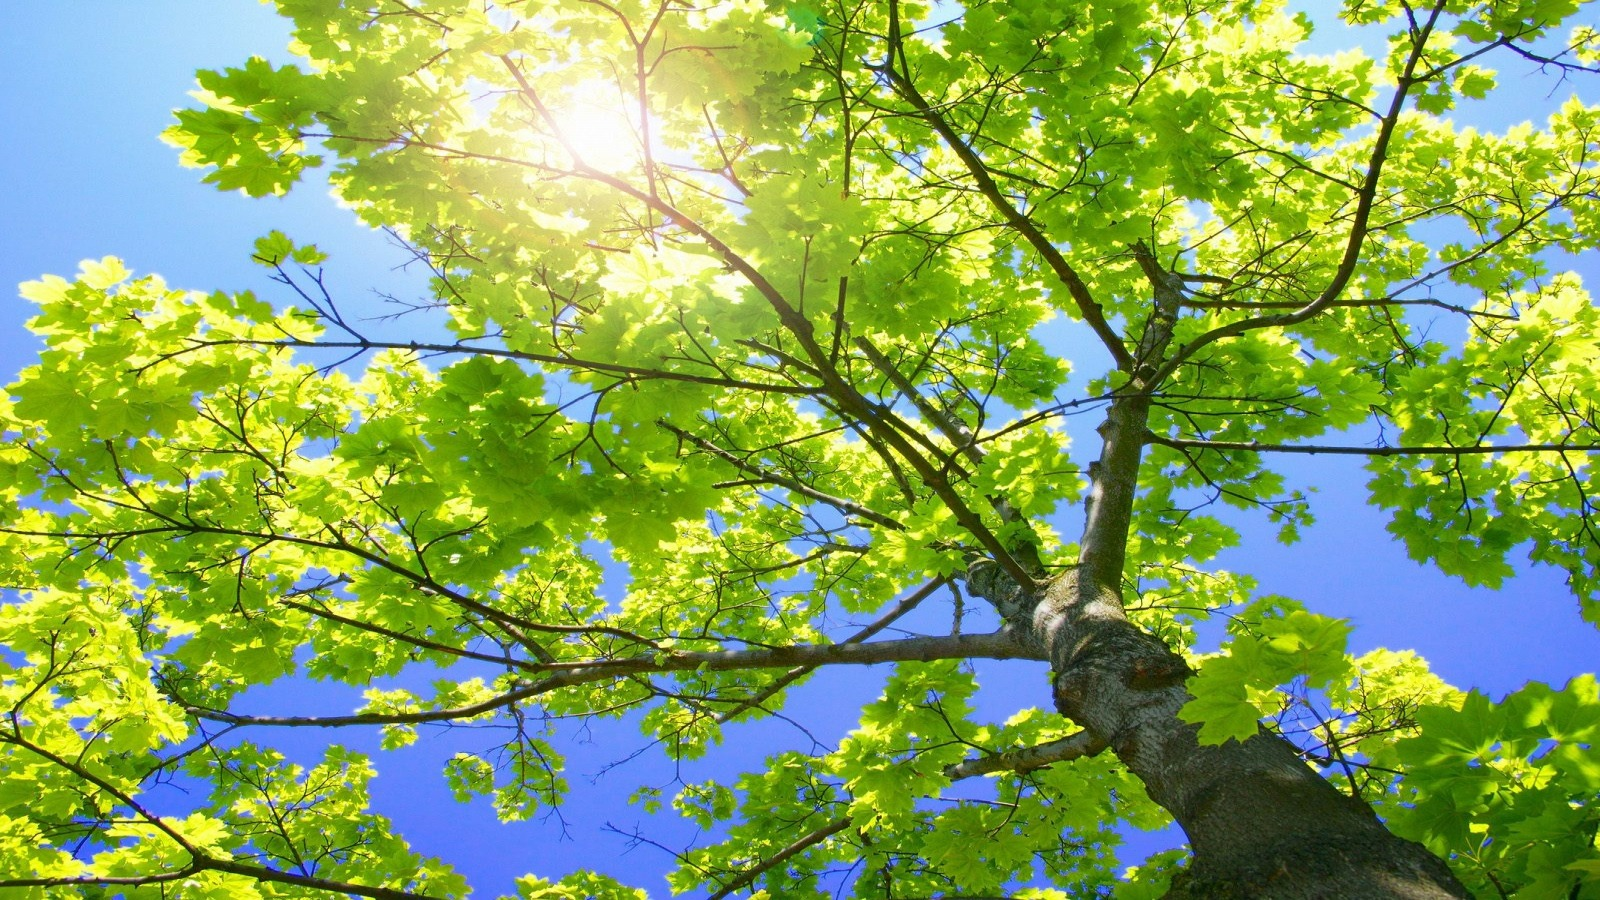 sunny tree branches wallpaper plants nature wallpapers in jpg format for free download